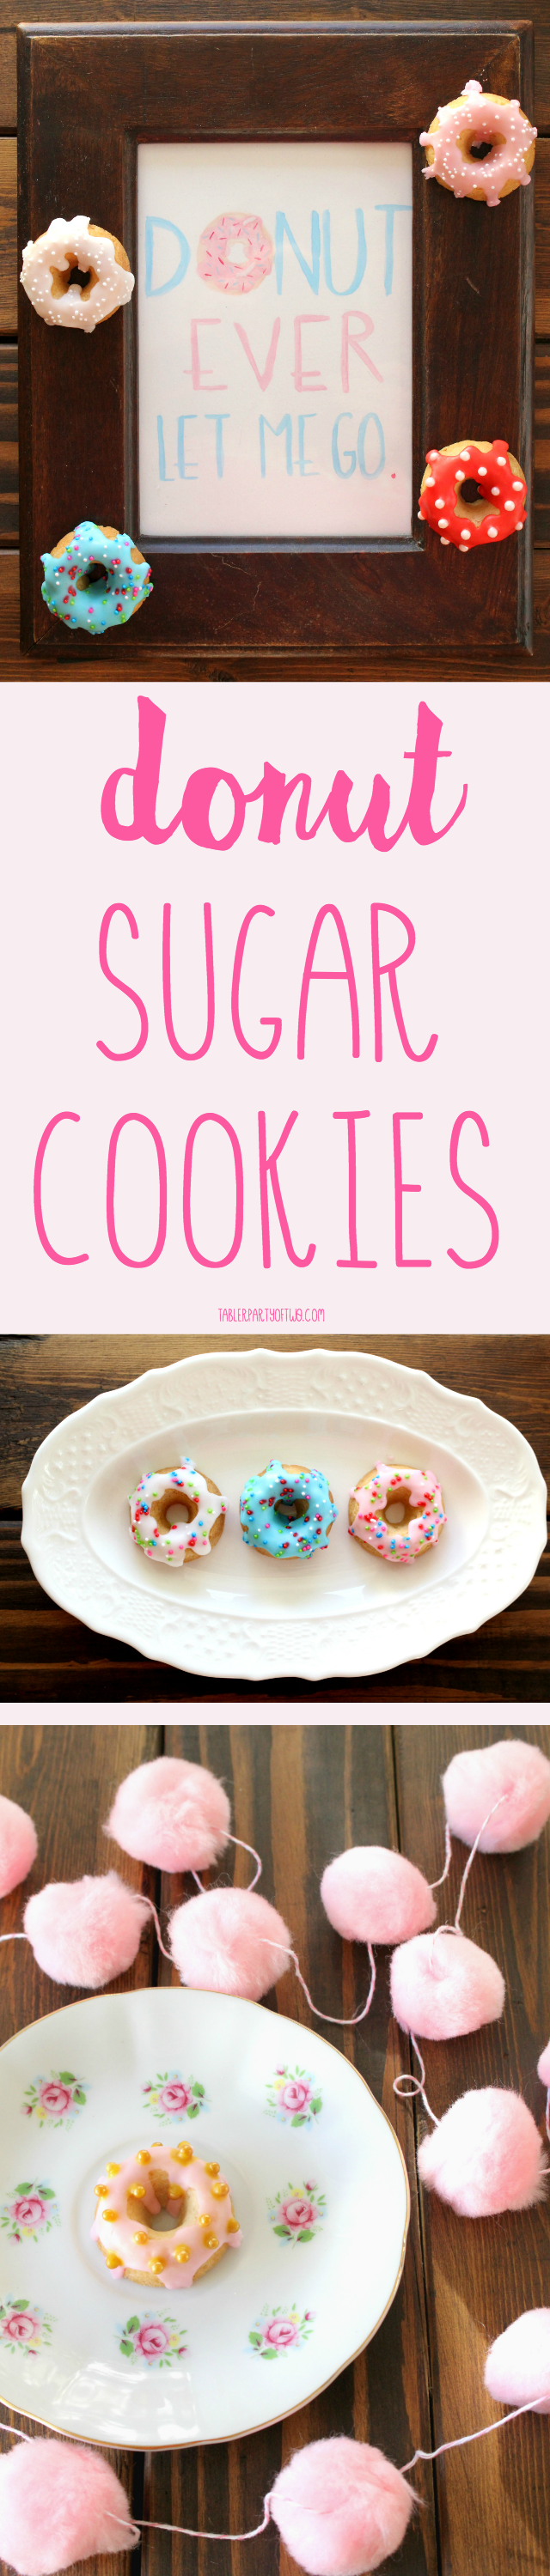 Donut Sugar Cookies are easy to make and so dang darling! -TablerPartyOfTwo.com